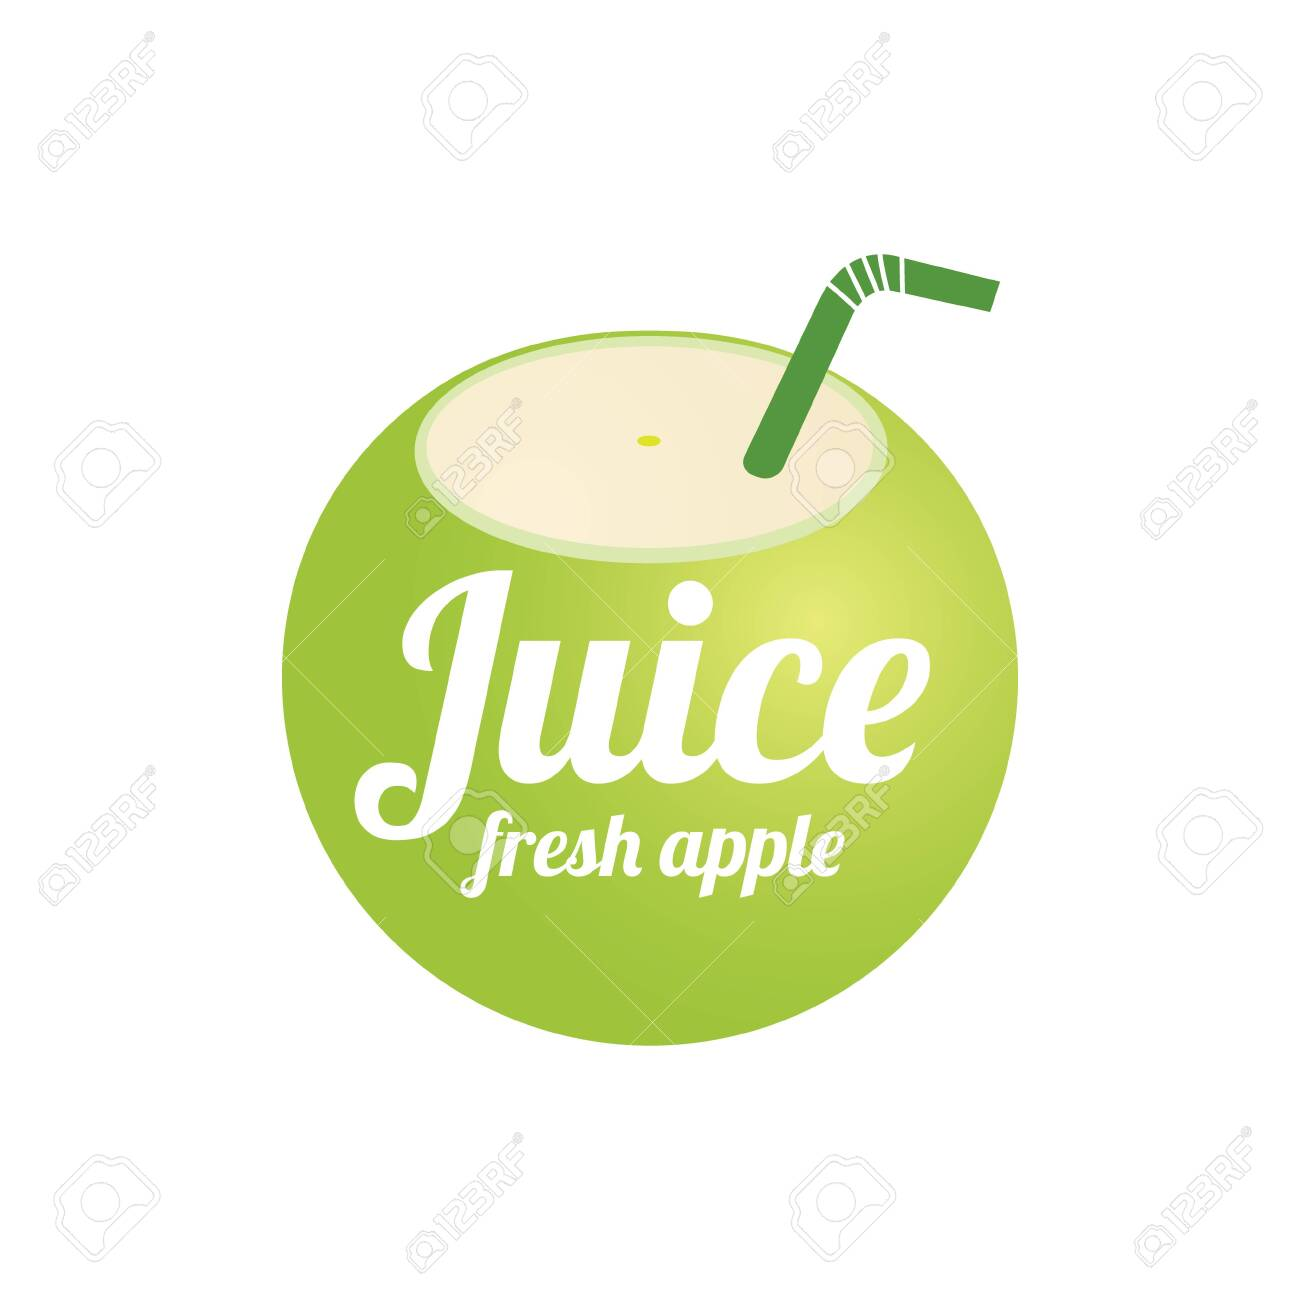 apple juice logo design concept fruit and juice icon theme royalty free cliparts vectors and stock illustration image 137661898 apple juice logo design concept fruit and juice icon theme